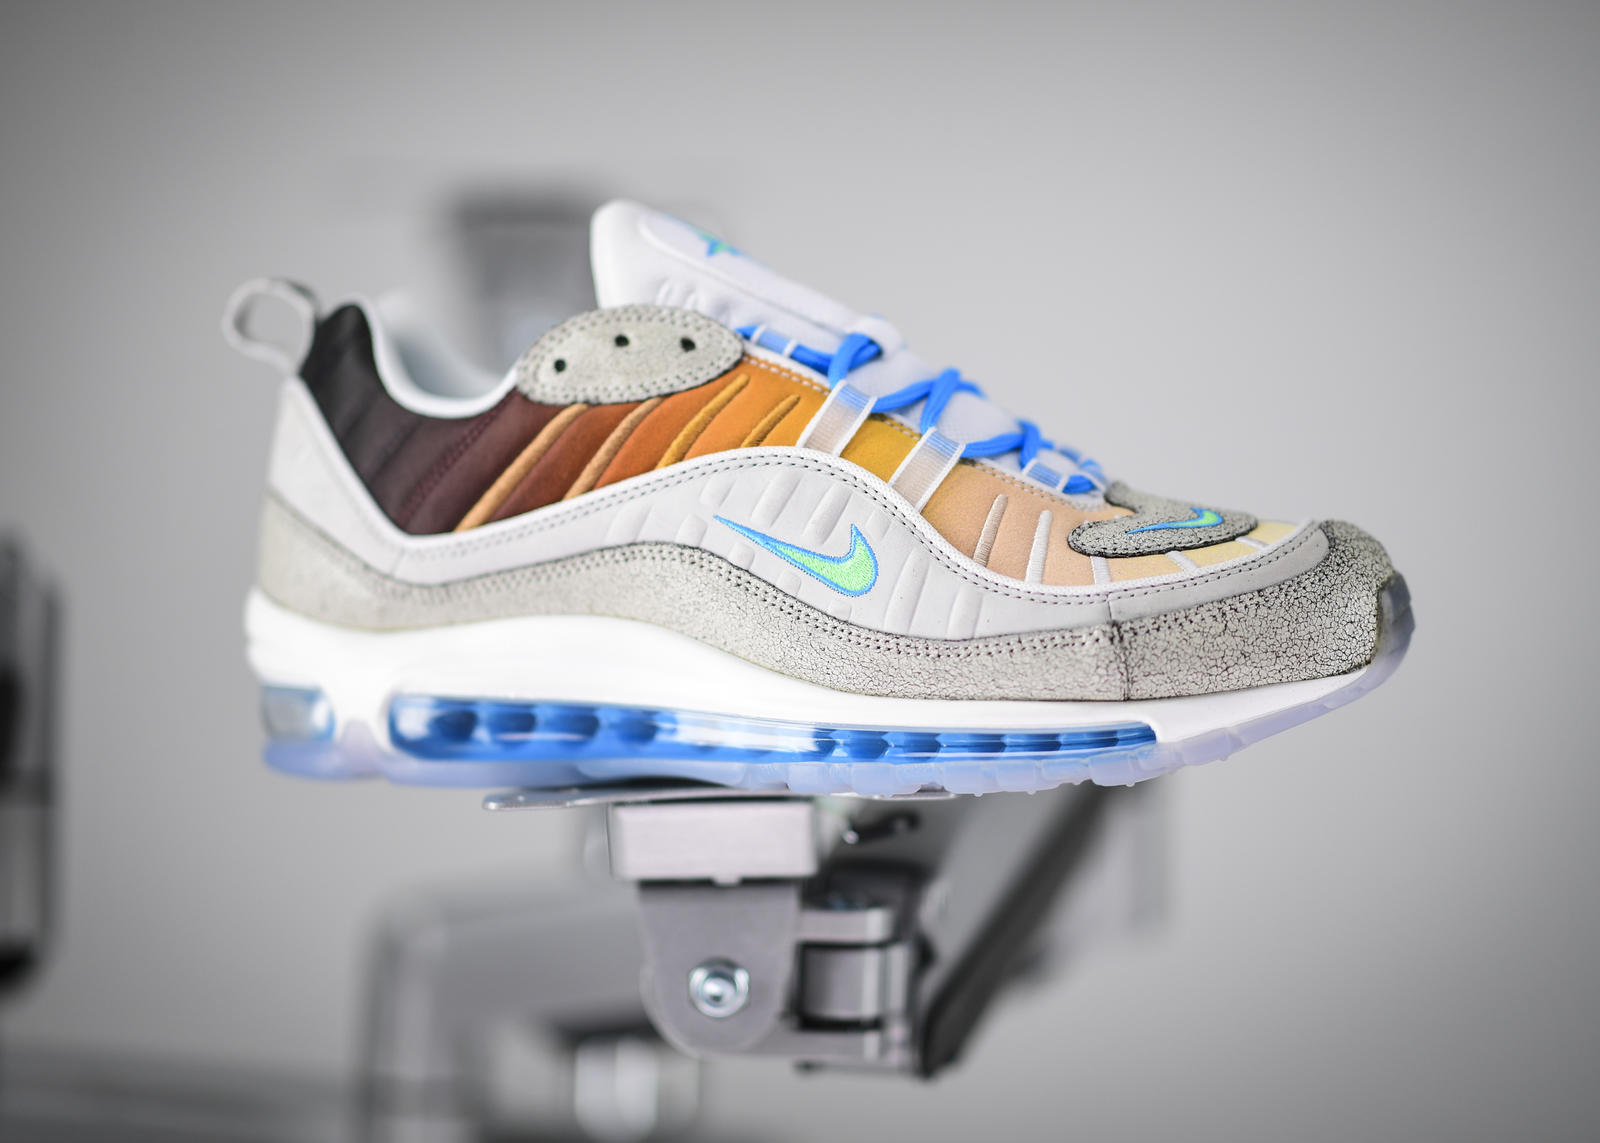 Chaussure Nike Air Max 97 On Air Jasmine Lasode. Nike LU